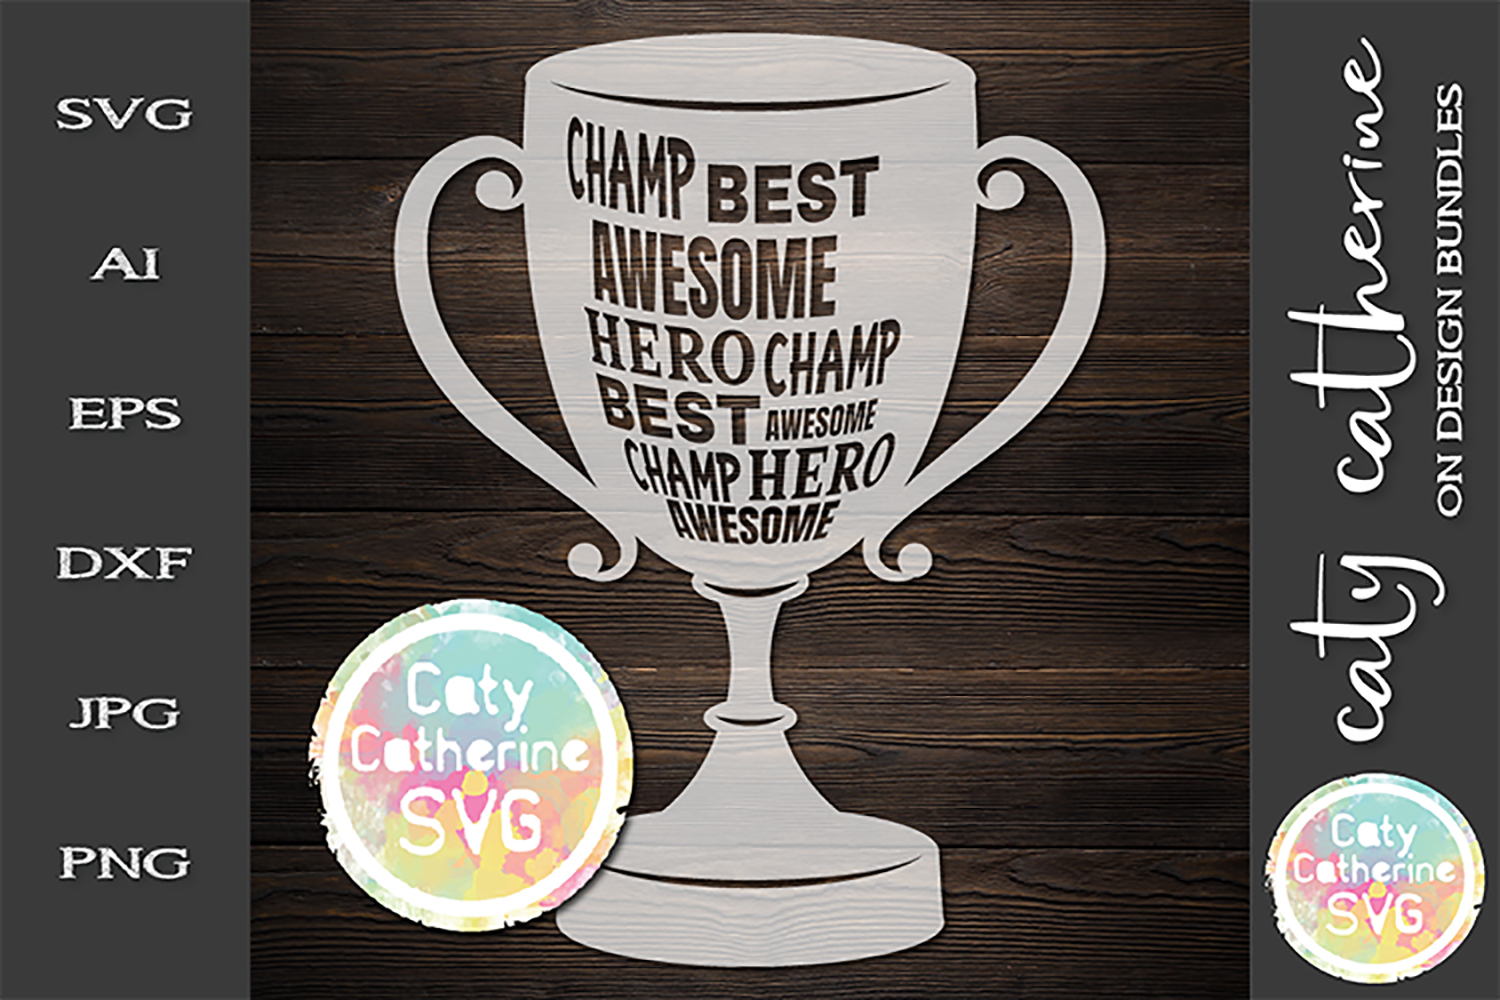 Champ Best Hero Awesome Trophy SVG Cut File example image 1